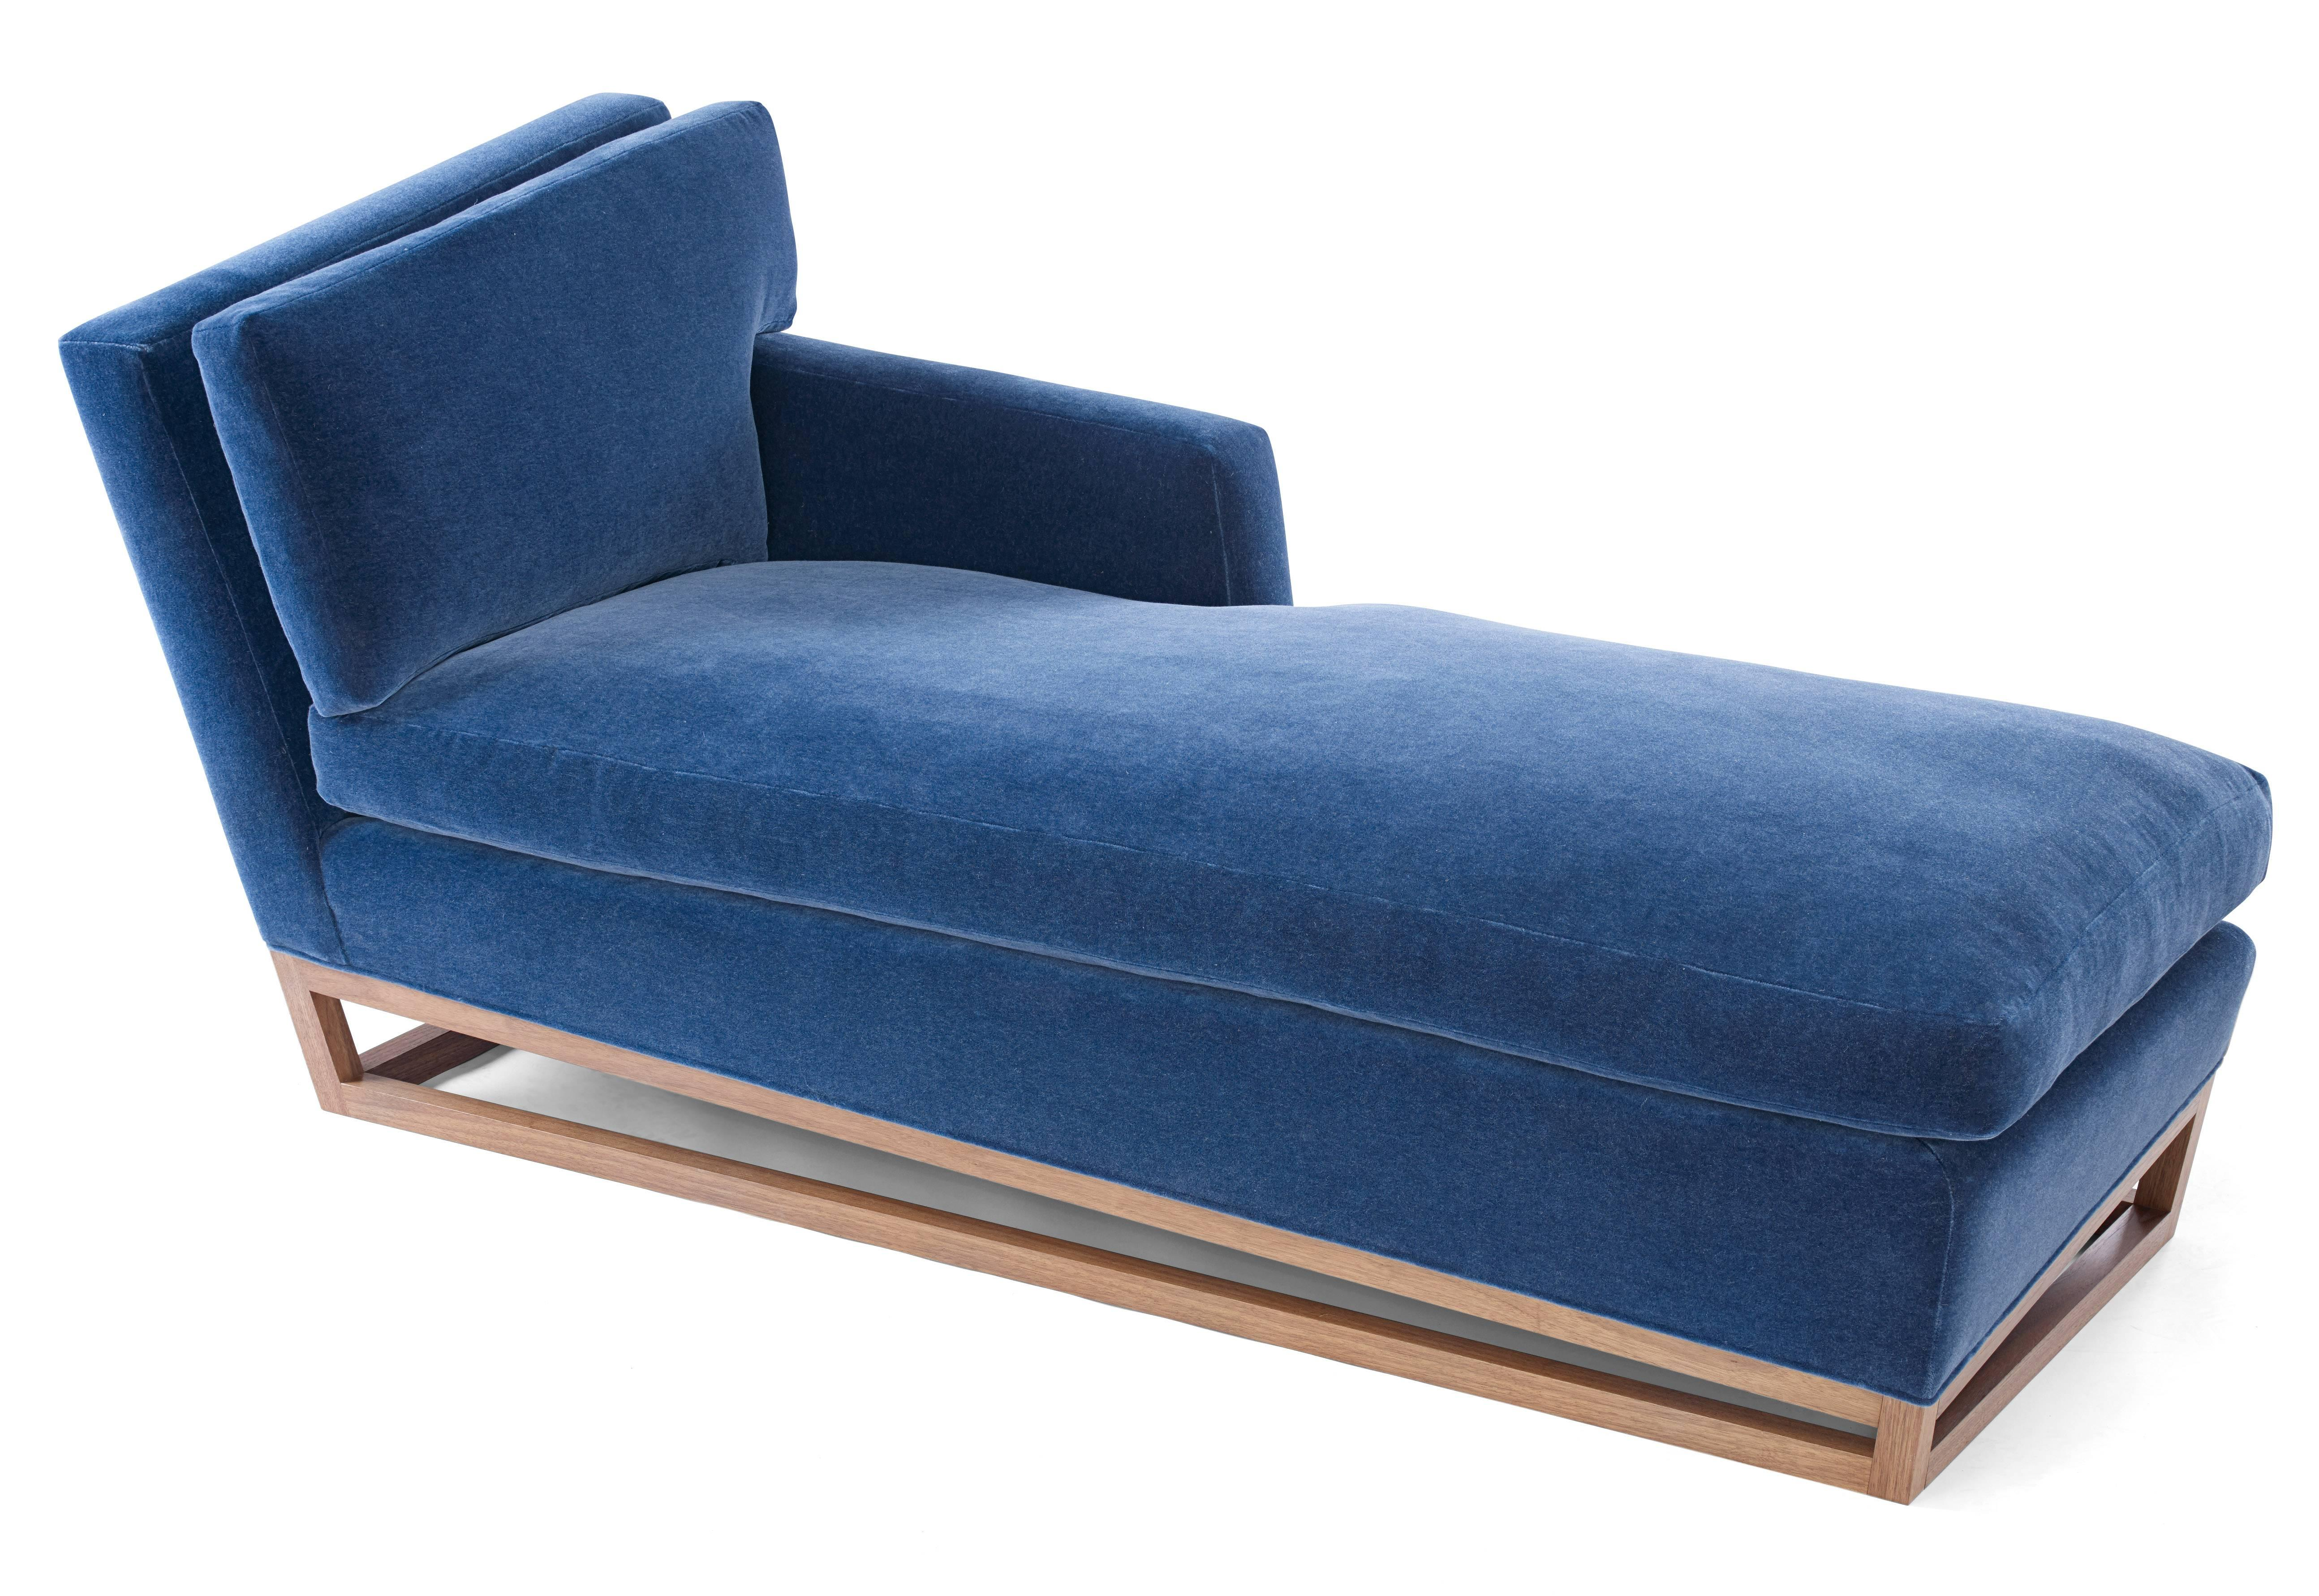 chaise to image tufted patio s dahlia furniture home of the alter way velvet your lounge